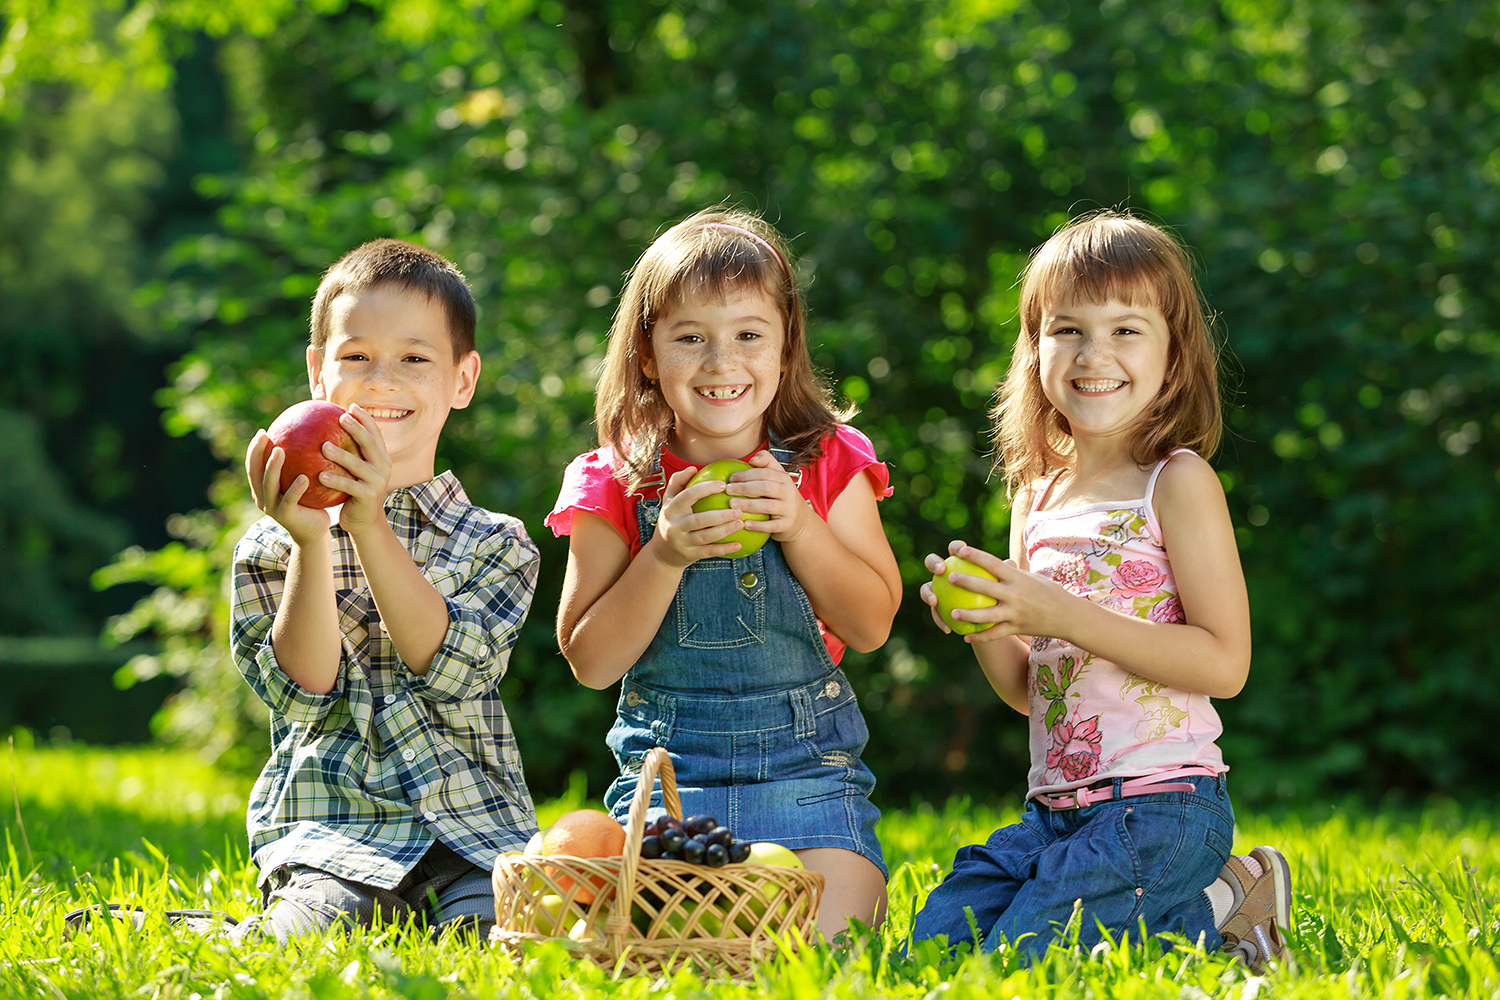 Kids outside with apples